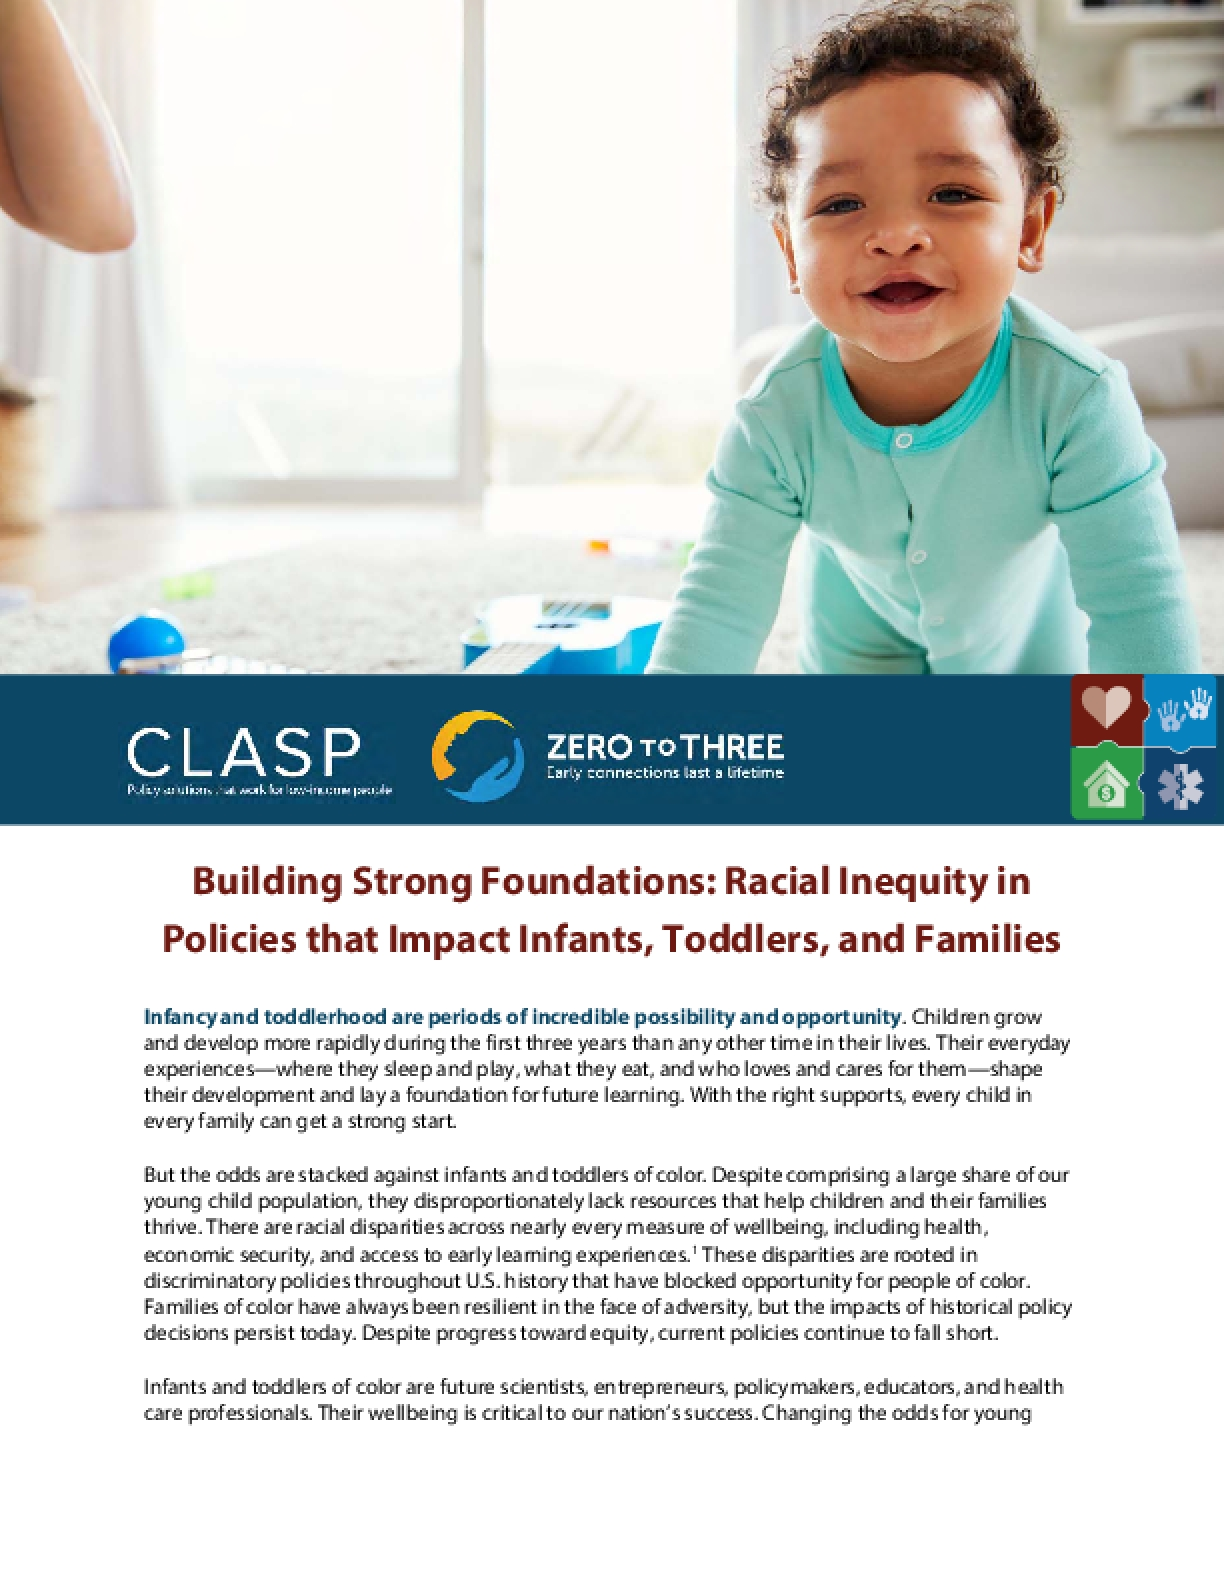 Building Strong Foundations: Racial Inequity in Policies that Impact Infants, Toddlers, and Families